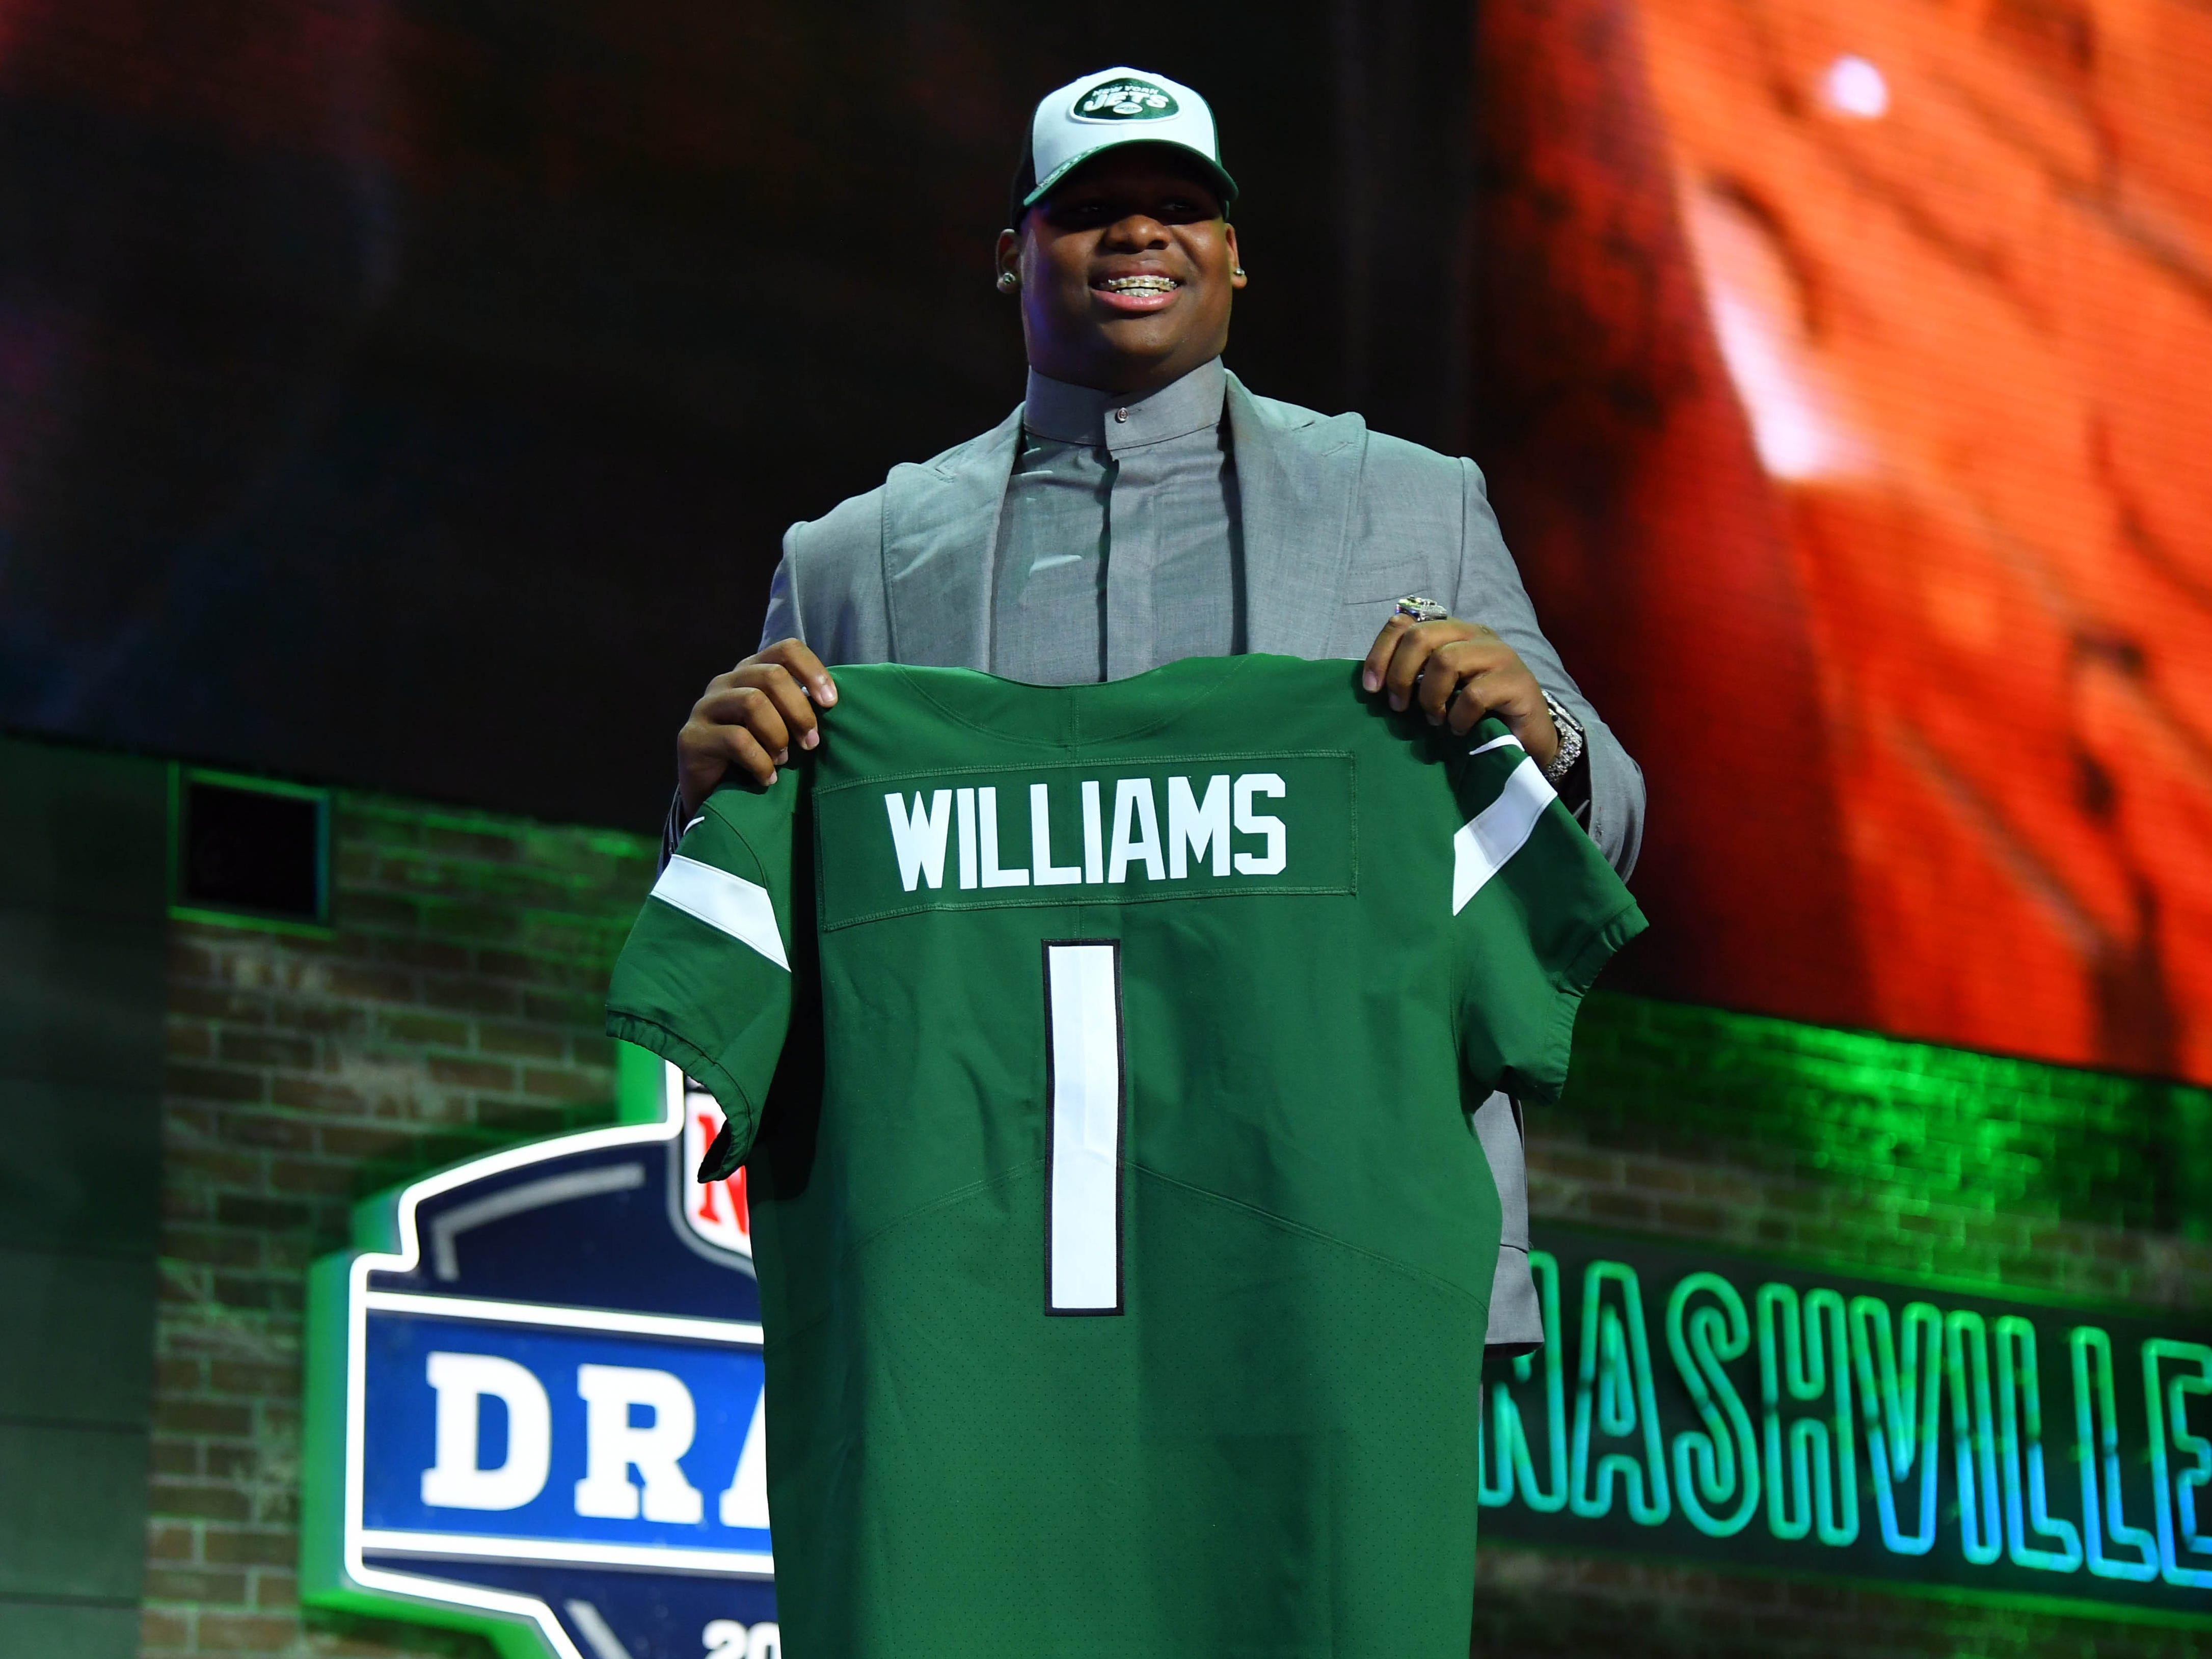 24. Jets (22): If you want to be strong up middle defensively, really can't do much better than rookie DL Quinnen Williams, ILB C.J. Mosley and S Jamal Adams